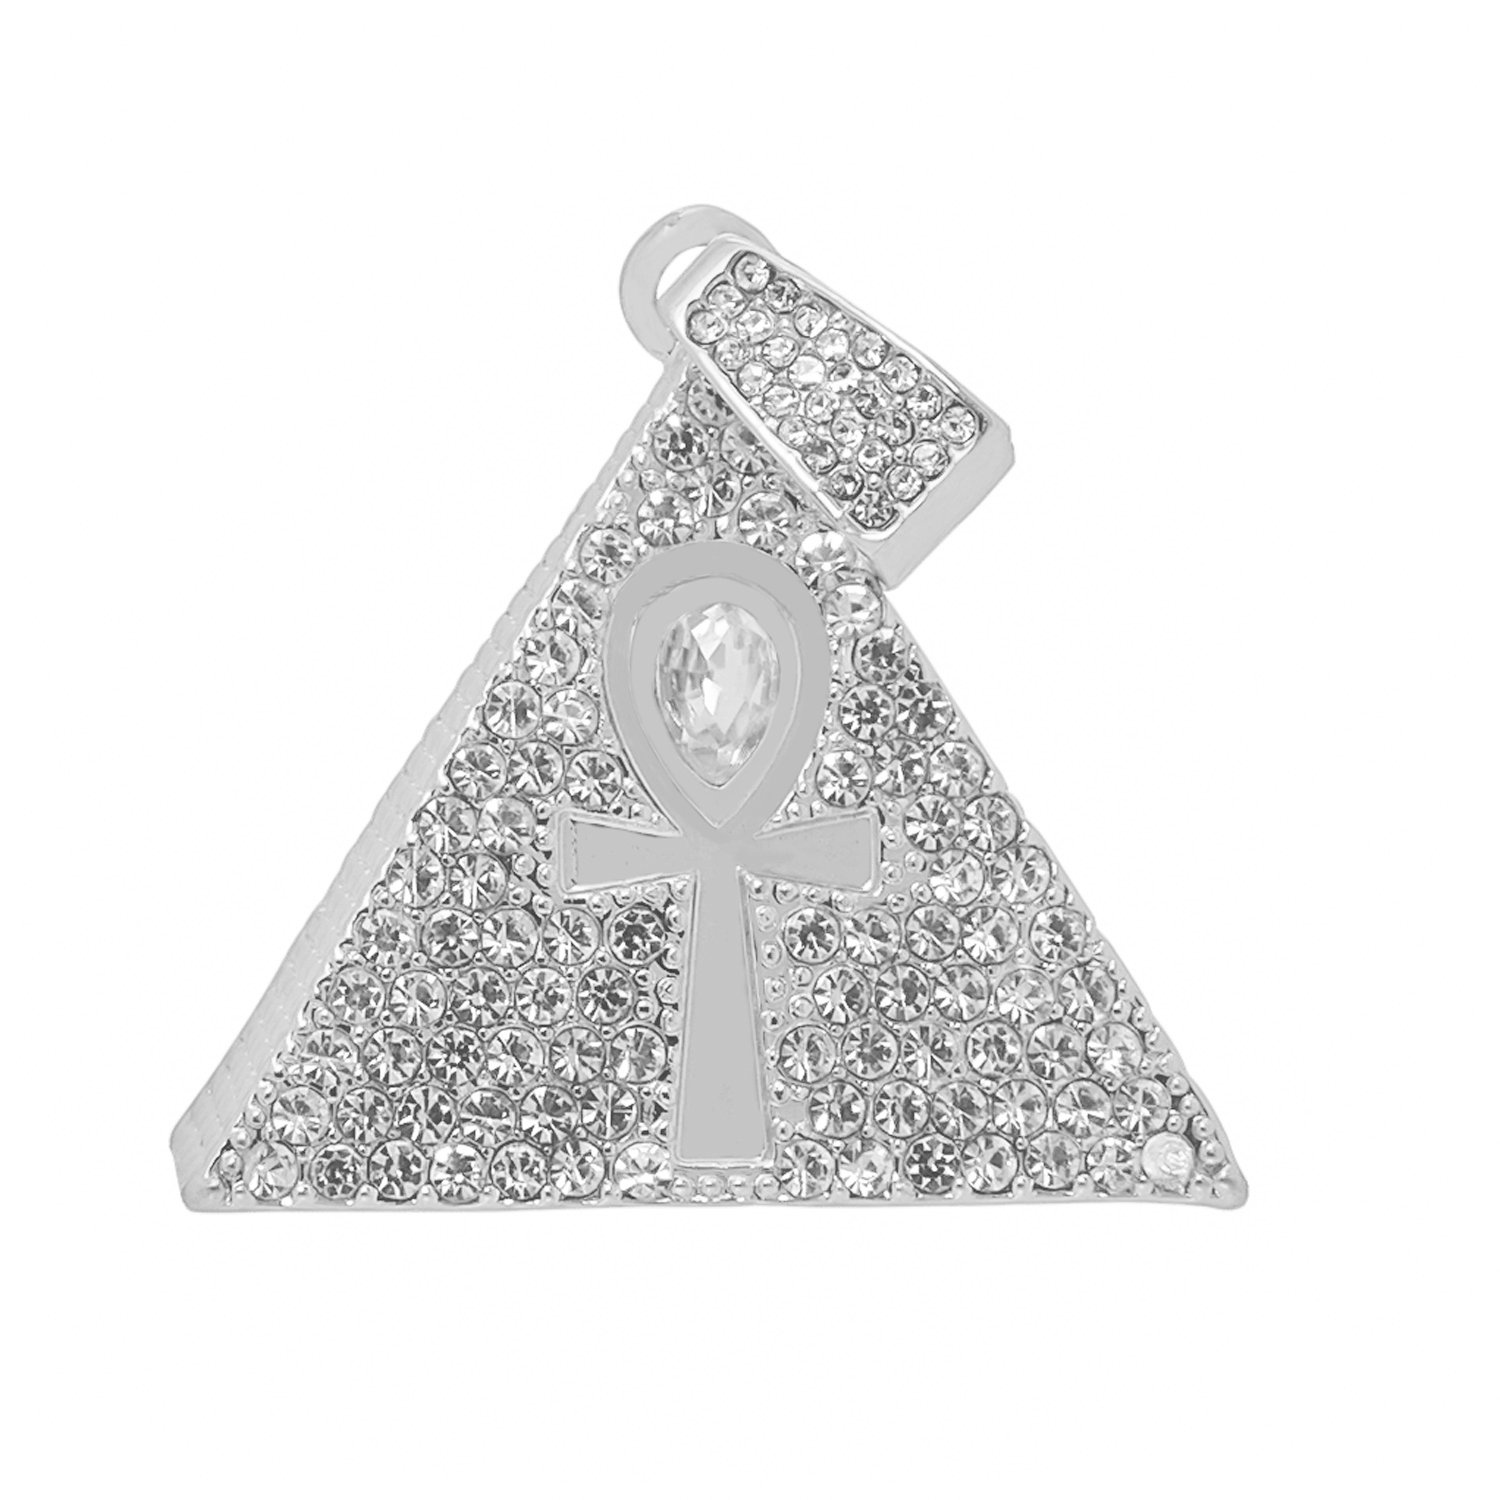 Silver-Tone Iced Out Hip Hop Bling Pyramid and Ankh Cross Pendant with Princess Cut Cubic Zirconia 24 Tennis Chain and 24 Rope Chain